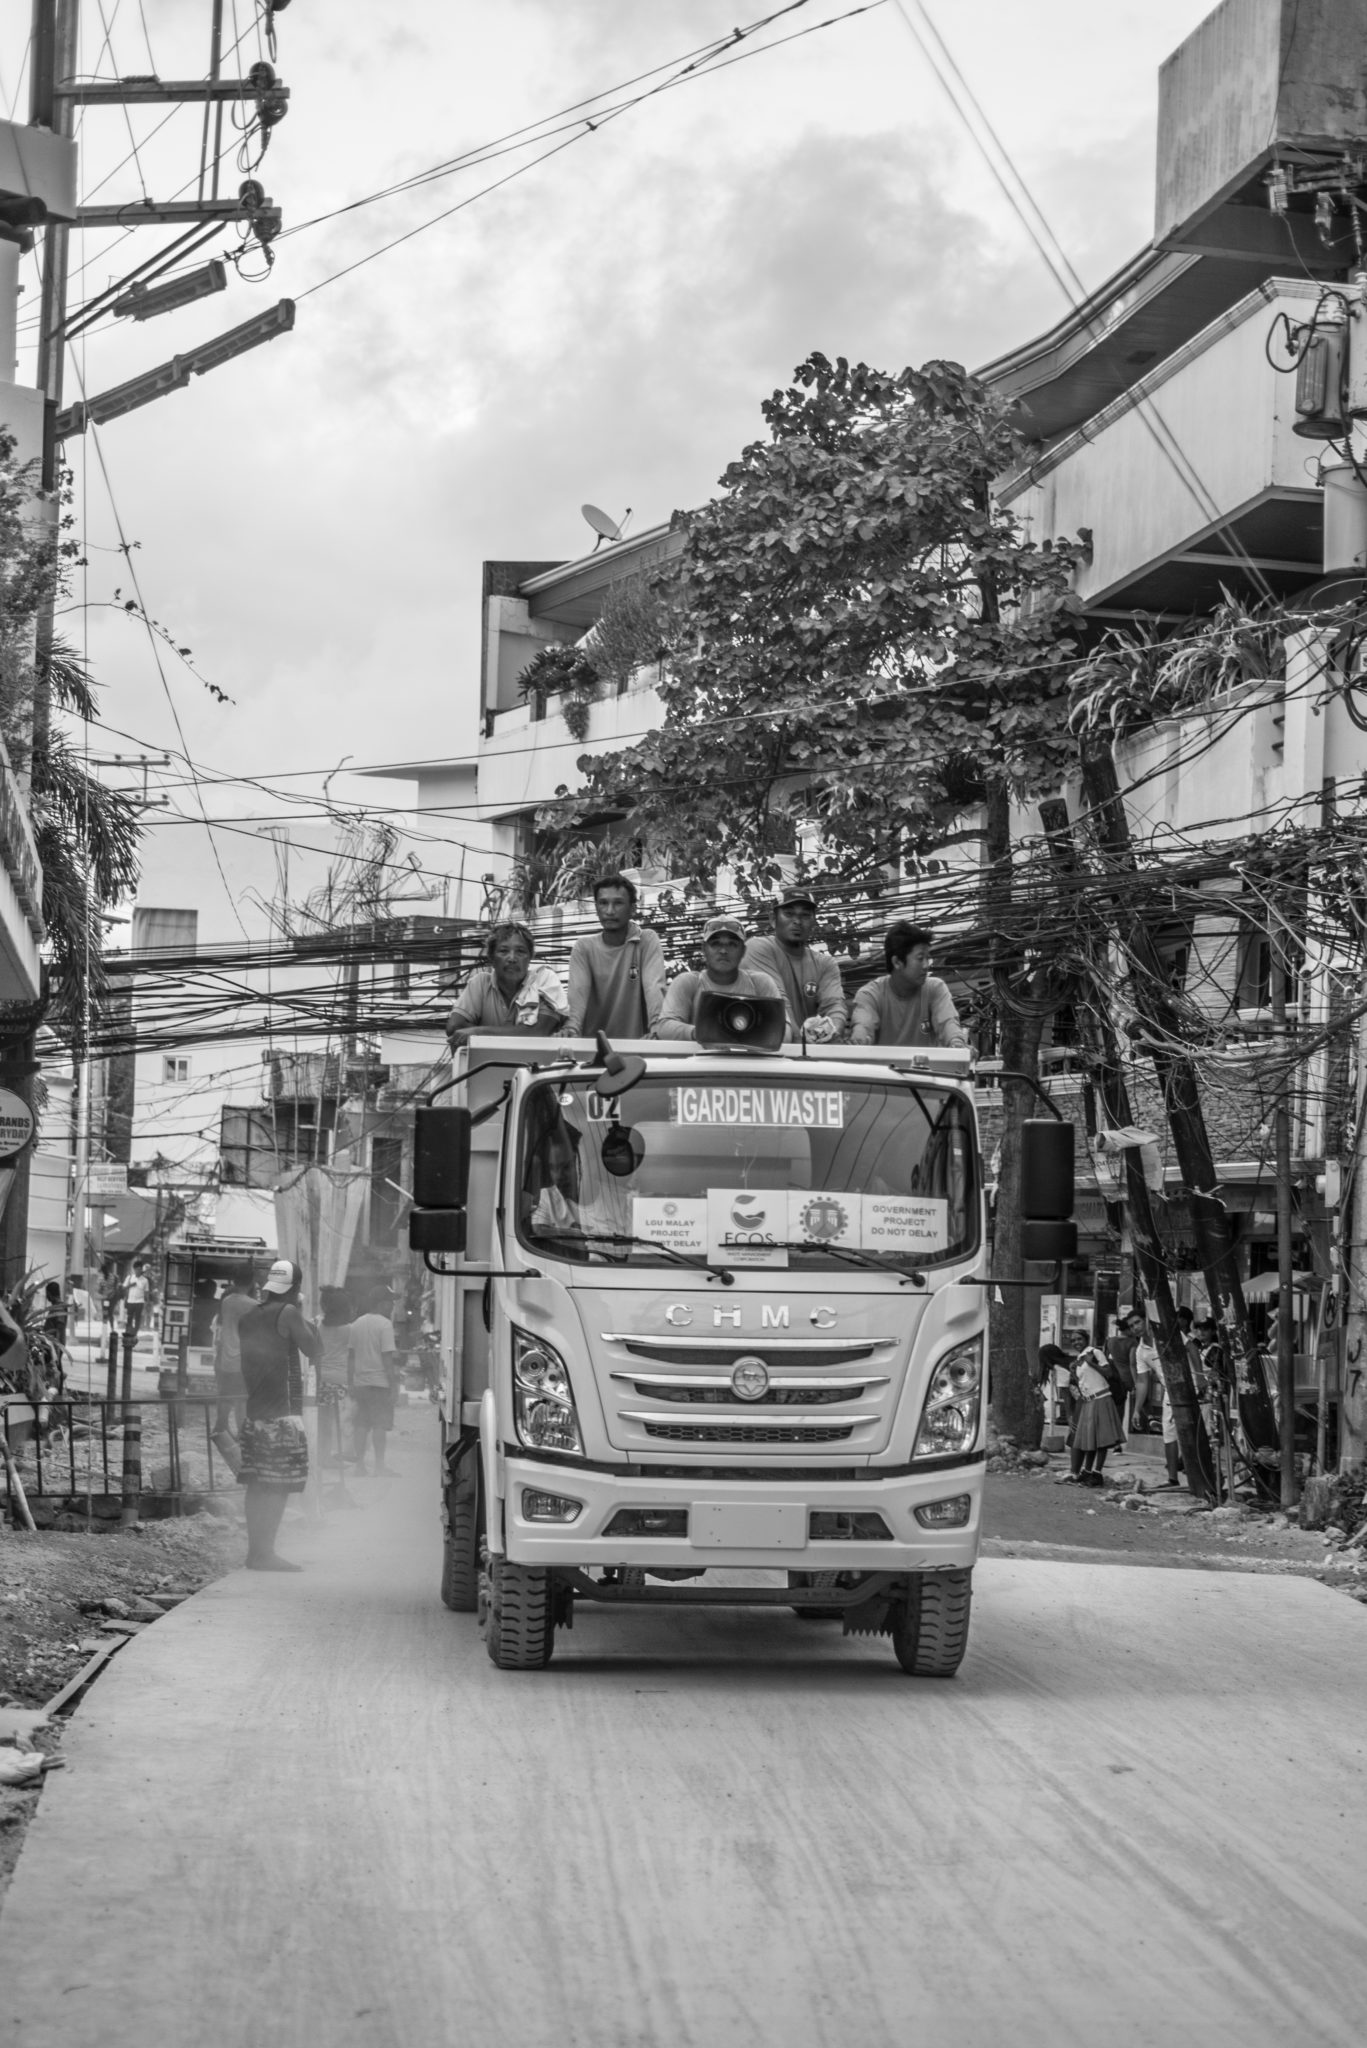 Trucks in Boracay collecting garbage and transporting construction materials remain the only large vehicles on the road